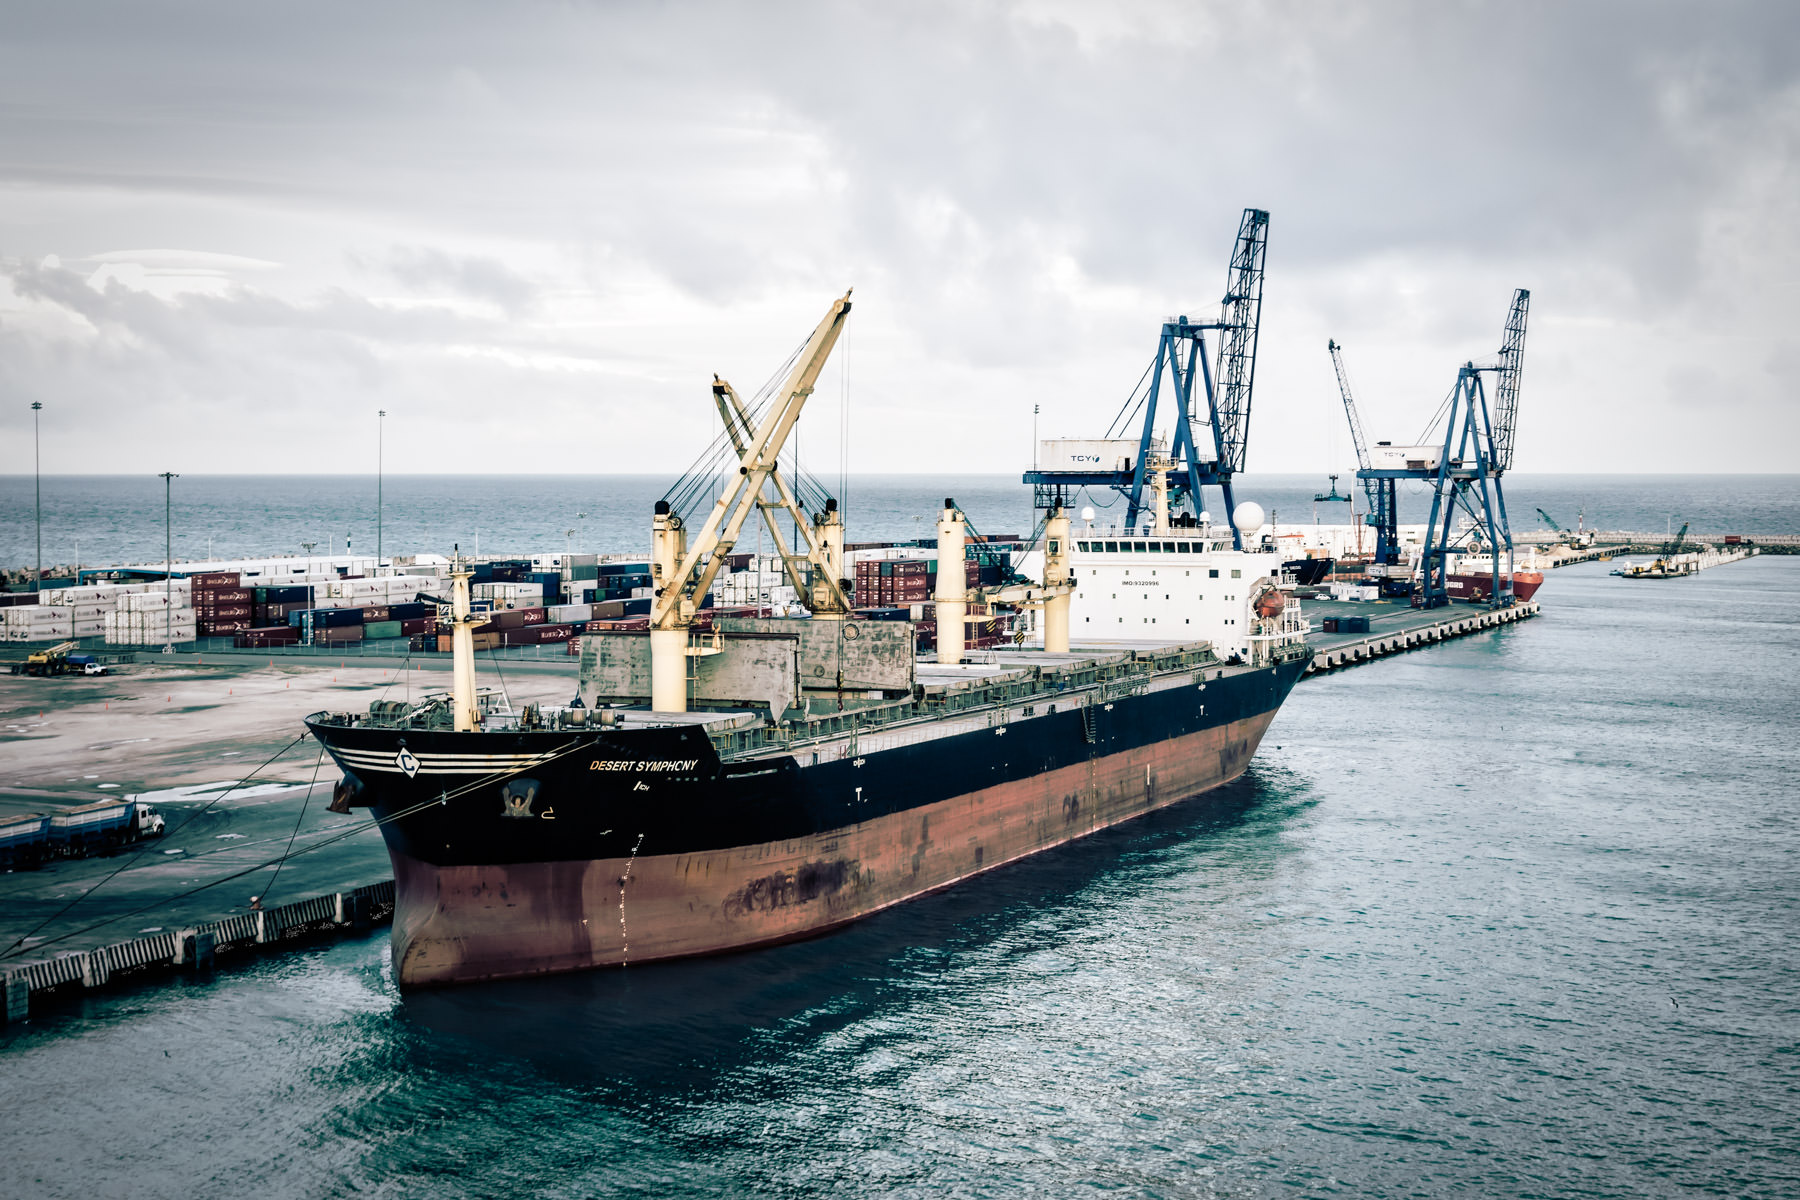 The bulk carrier Desert Symphony, docked at the Terminal Remota—the cargo terminal for the Port of Progreso, Mexico